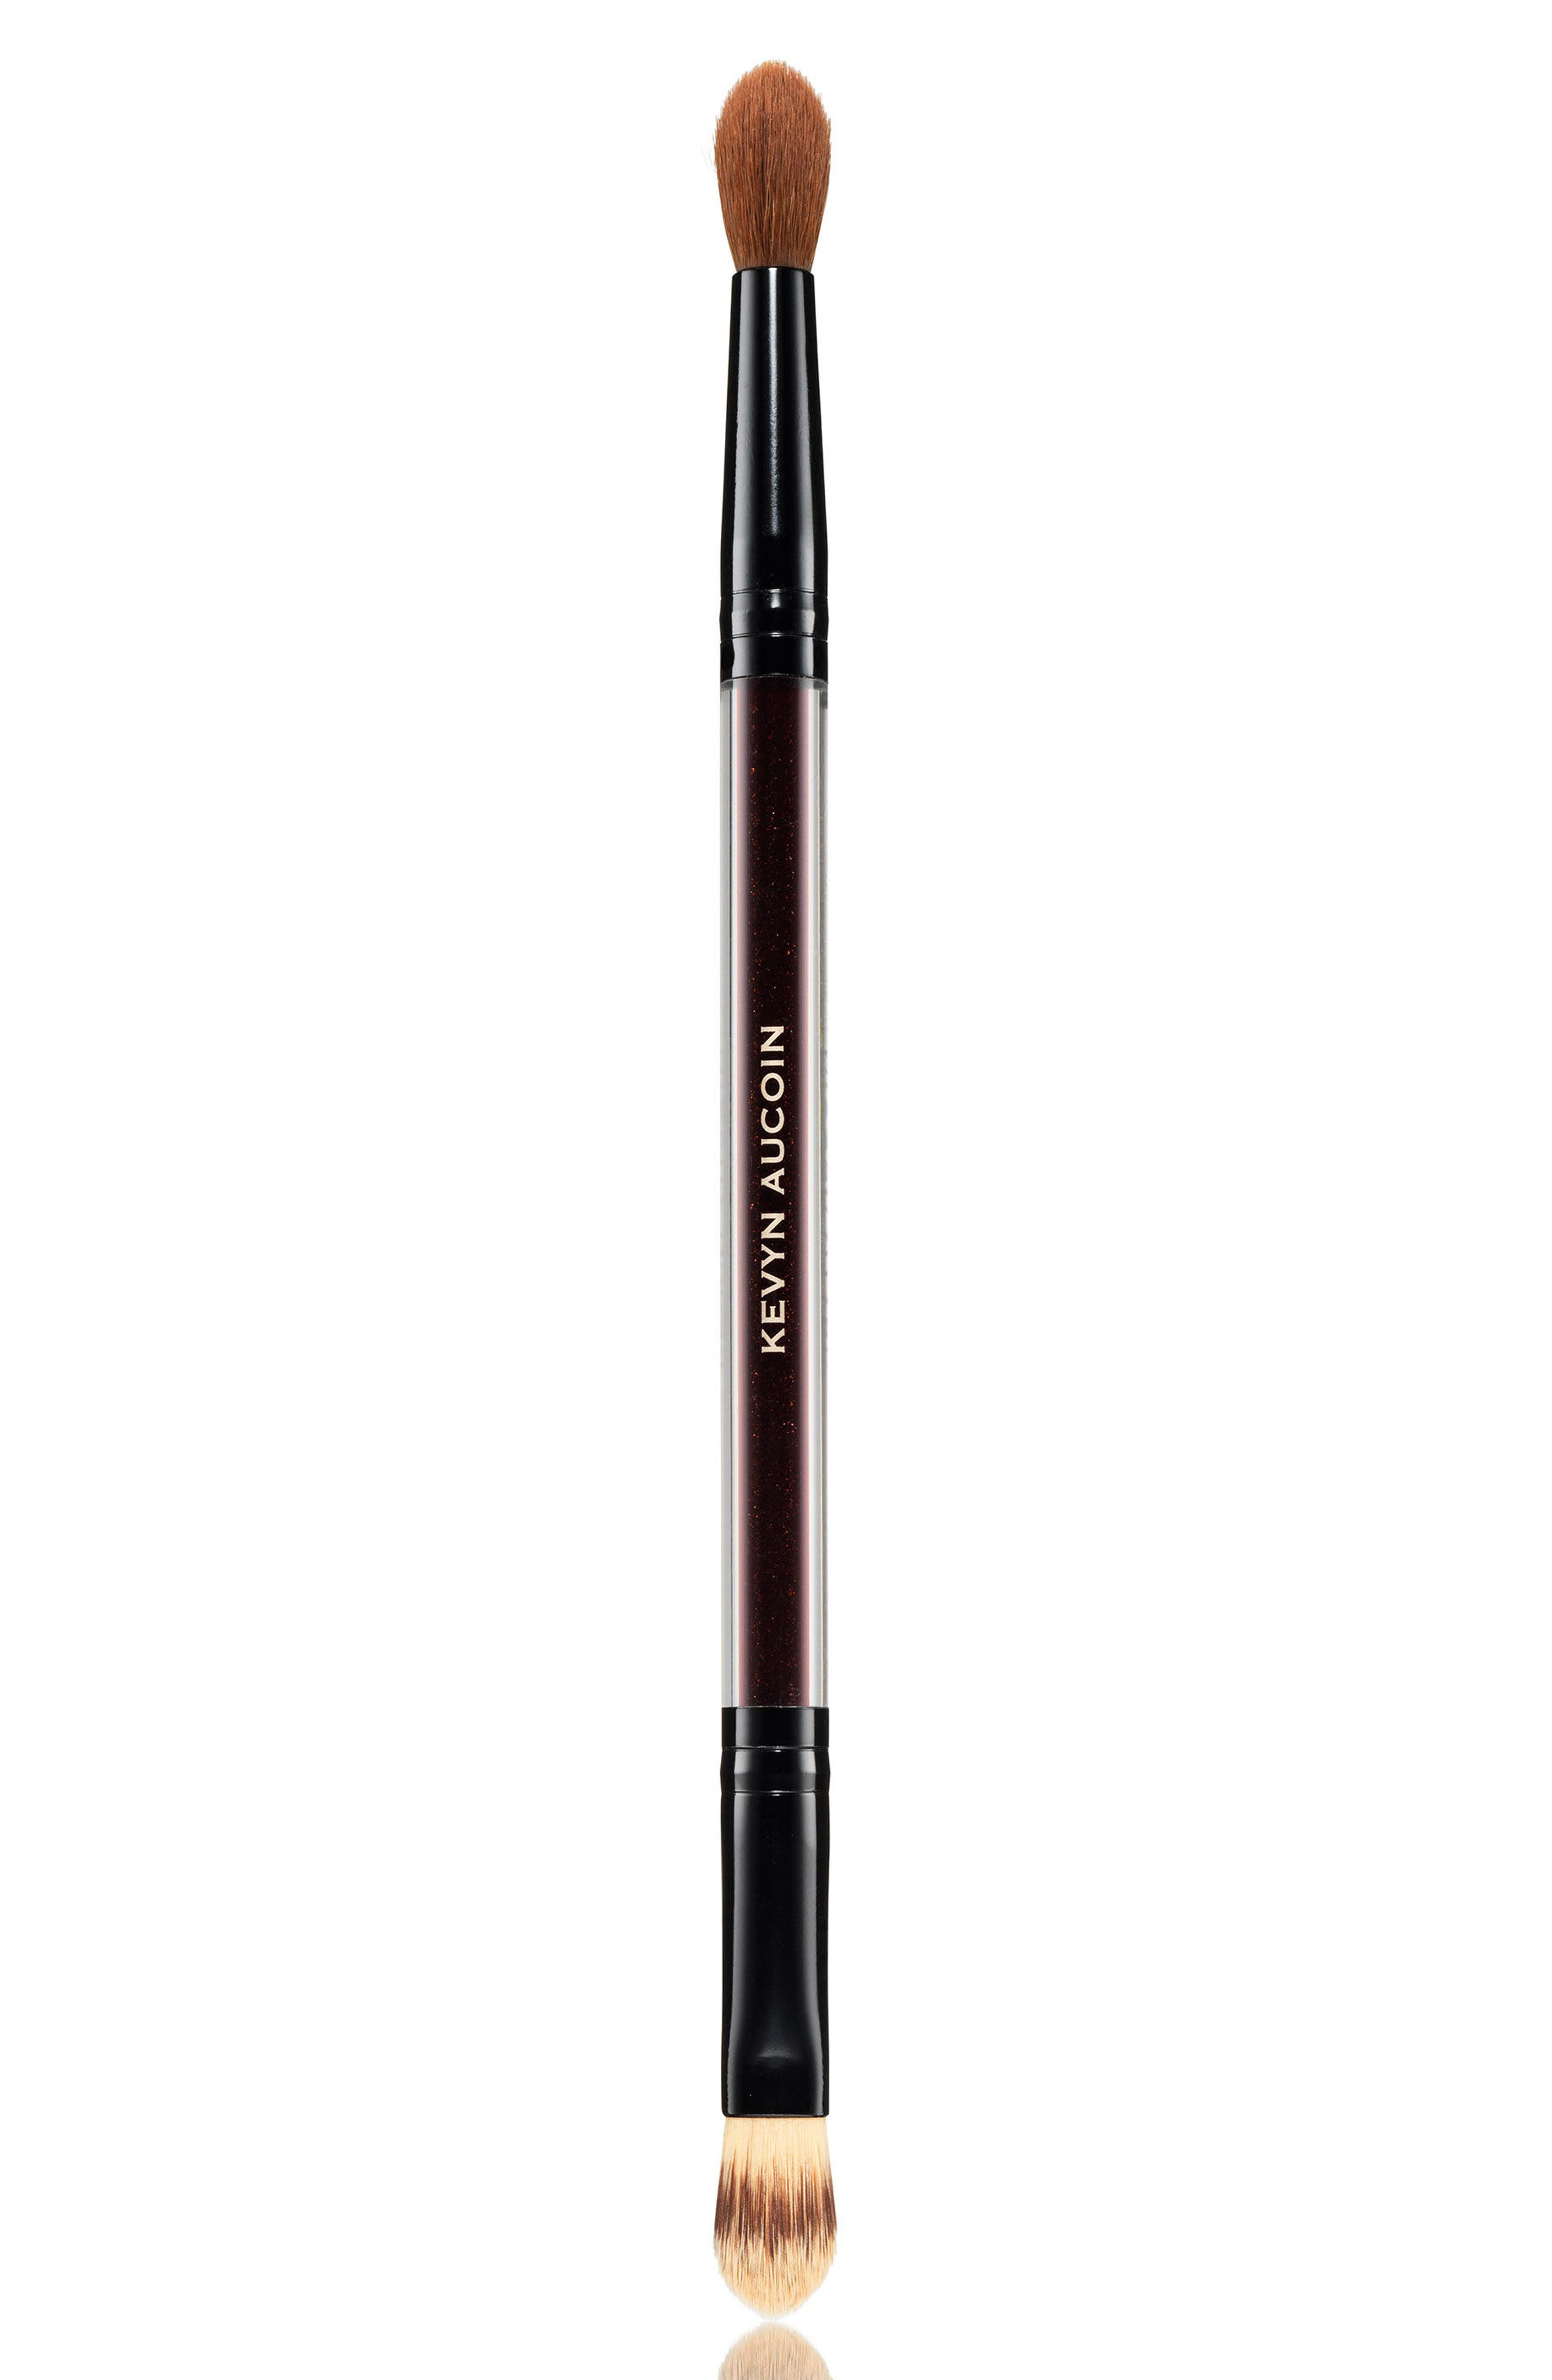 Main Image - SPACE.NK.apothecary Kevyn Aucoin Beauty The Duet Concealer Brush